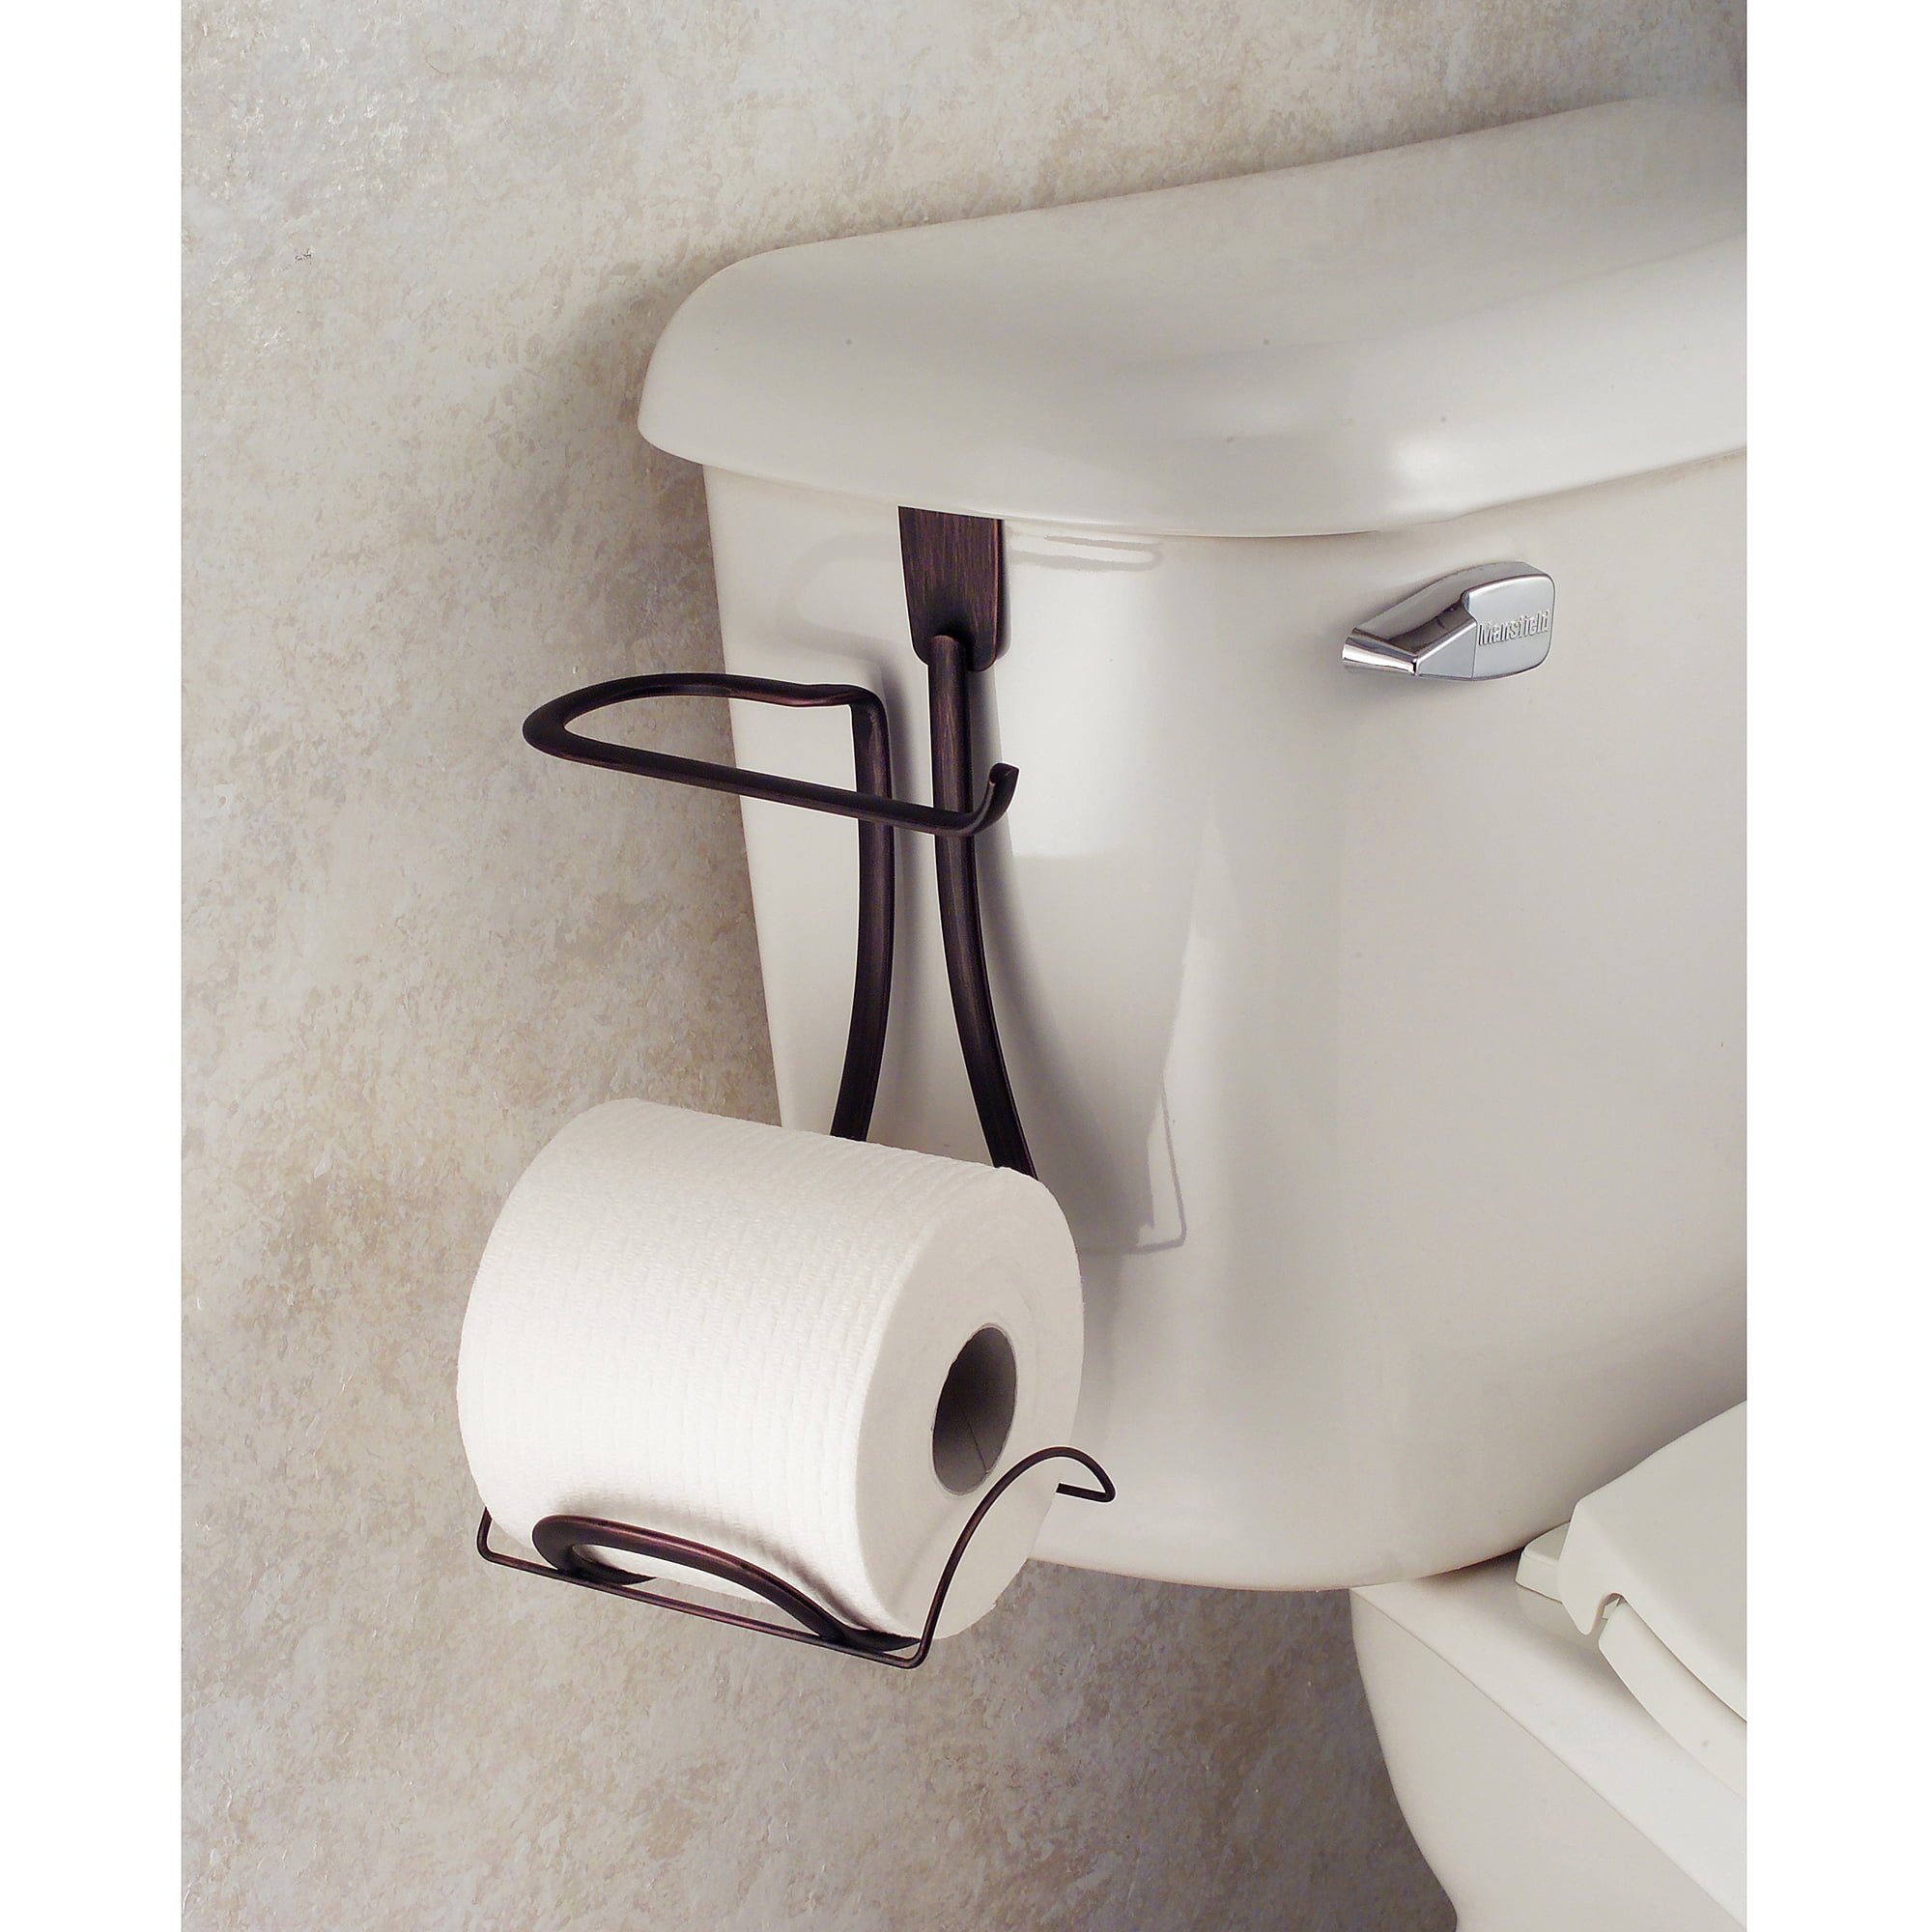 Inter Design® Over Tank Tissue Holder!™ - Walmart.com